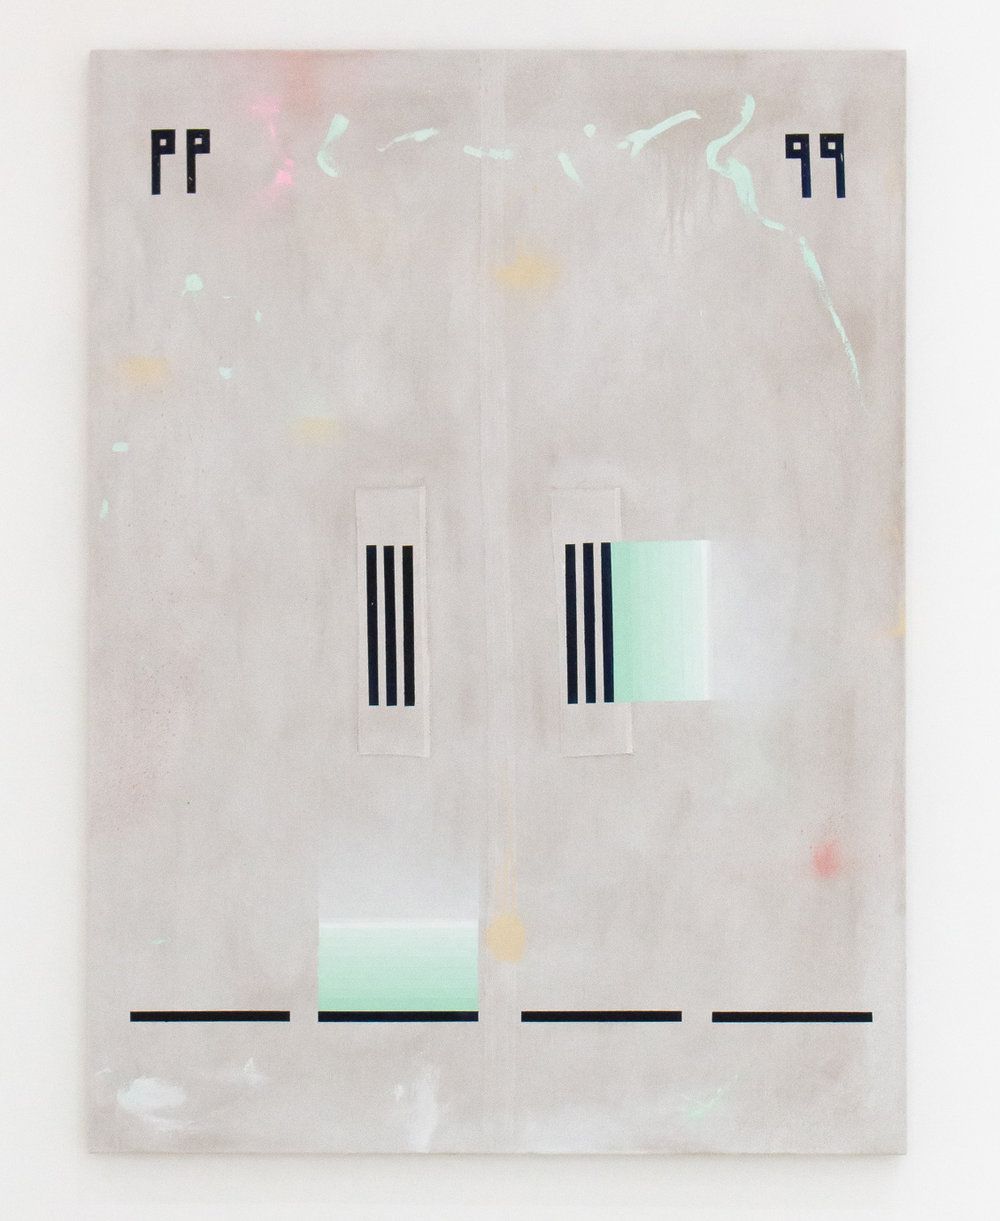 SARAH crowEST  Appliqué #6 (pause)  2018 linen, gesso, acrylic paint, linen and cotton thread 137 × 102 cm